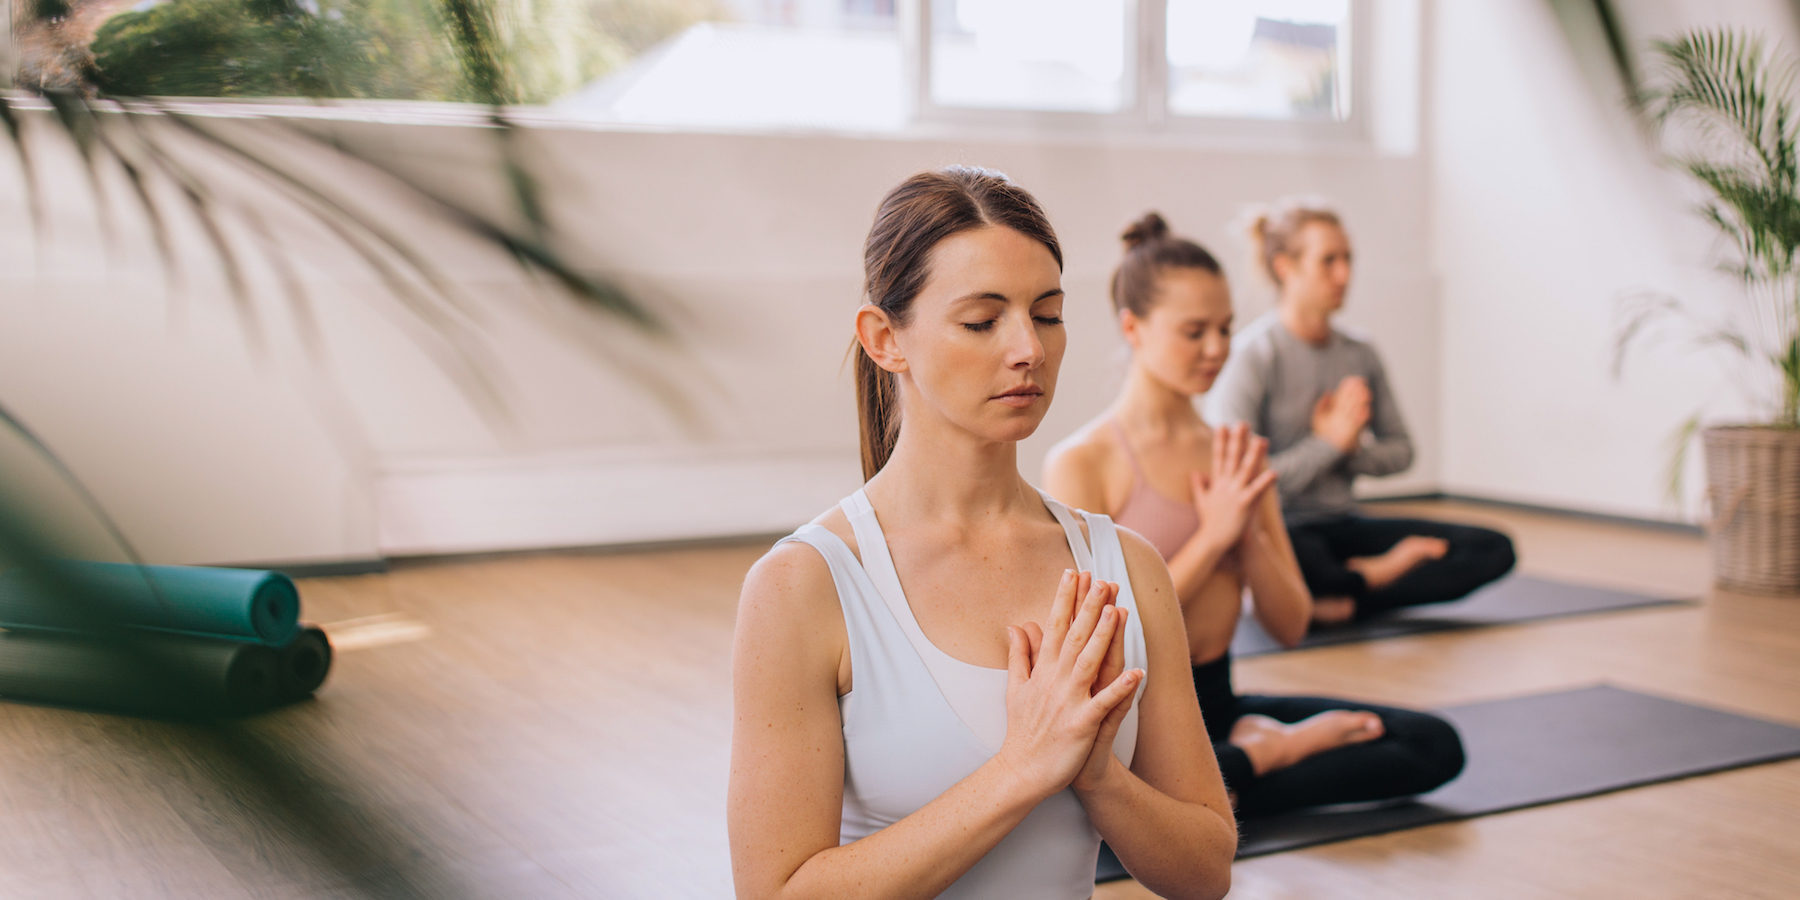 meaning namaste in yoga class